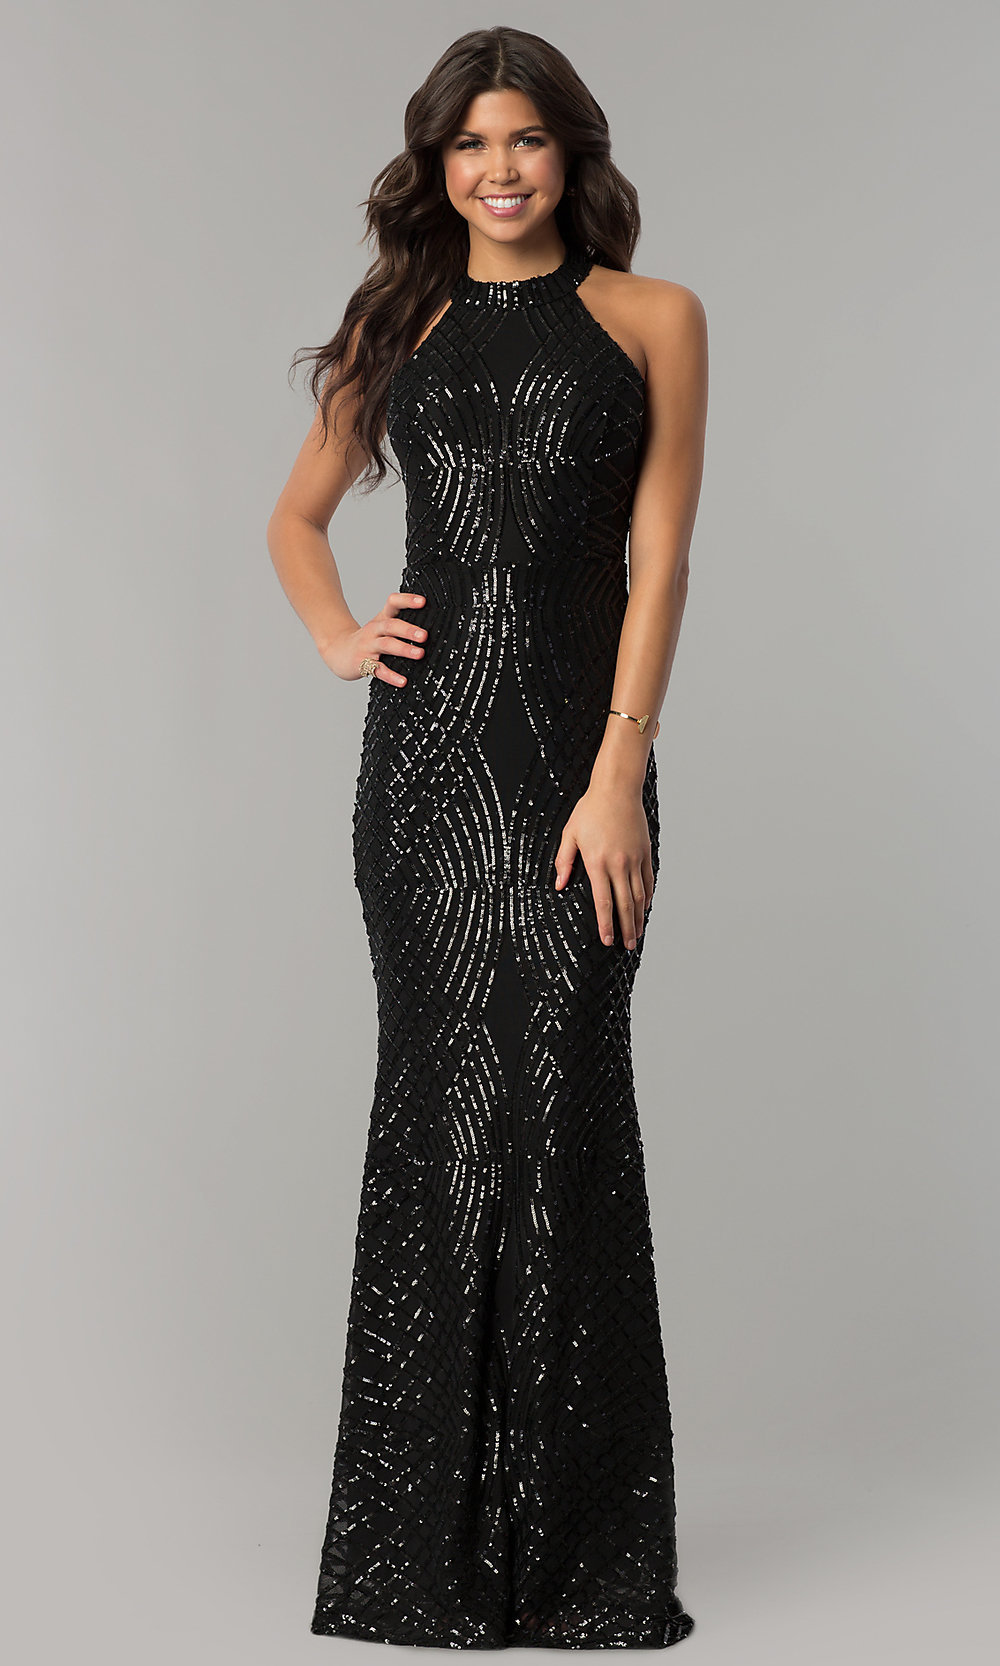 Cut-Out Black Sequin Long Formal Dress - PromGirl